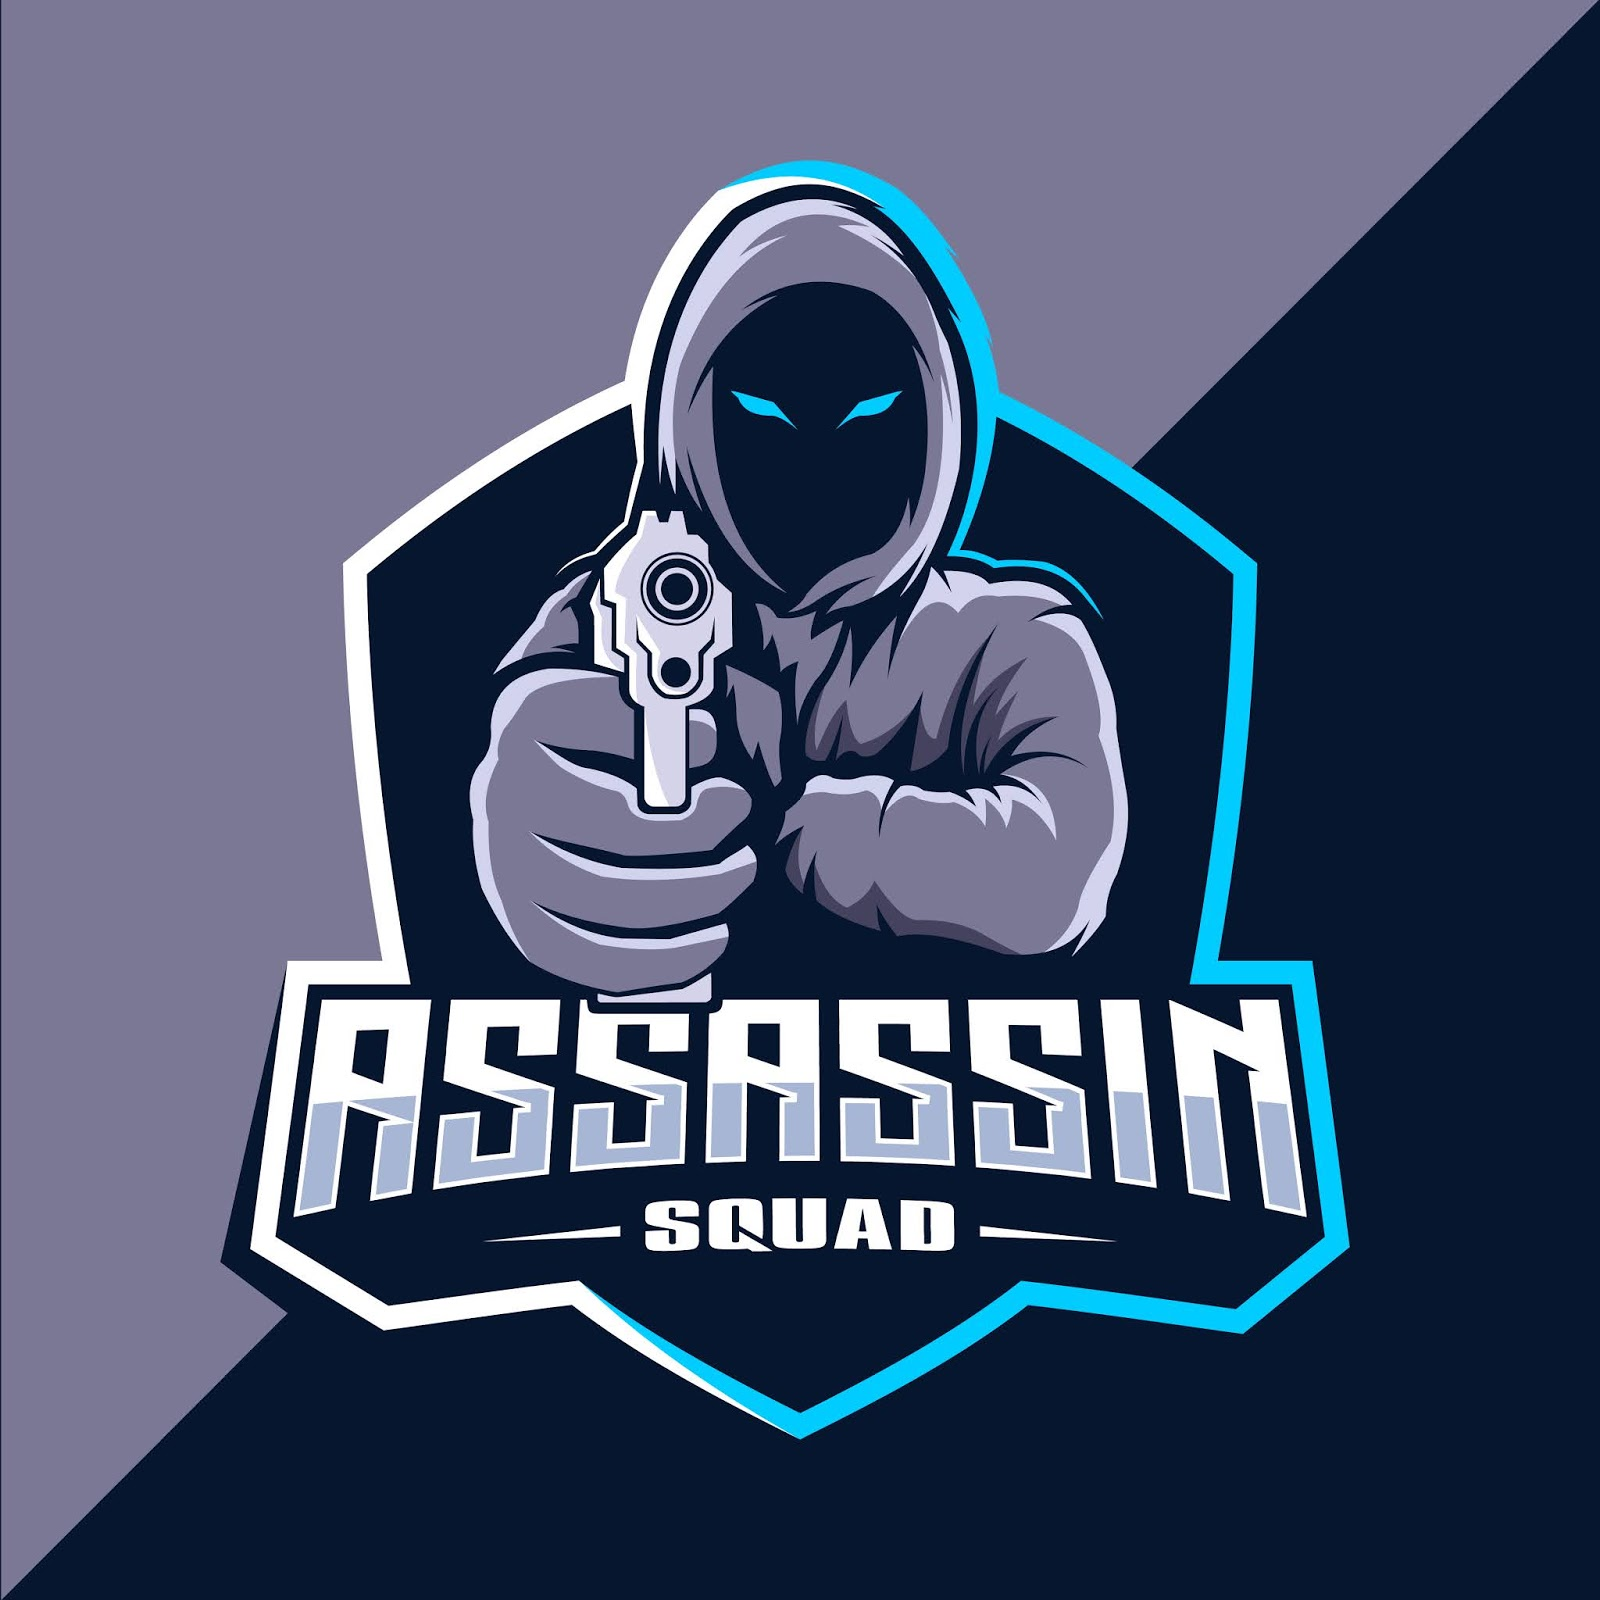 Assassin With Guns Mascot Esport Logo Design Free Download Vector CDR, AI, EPS and PNG Formats